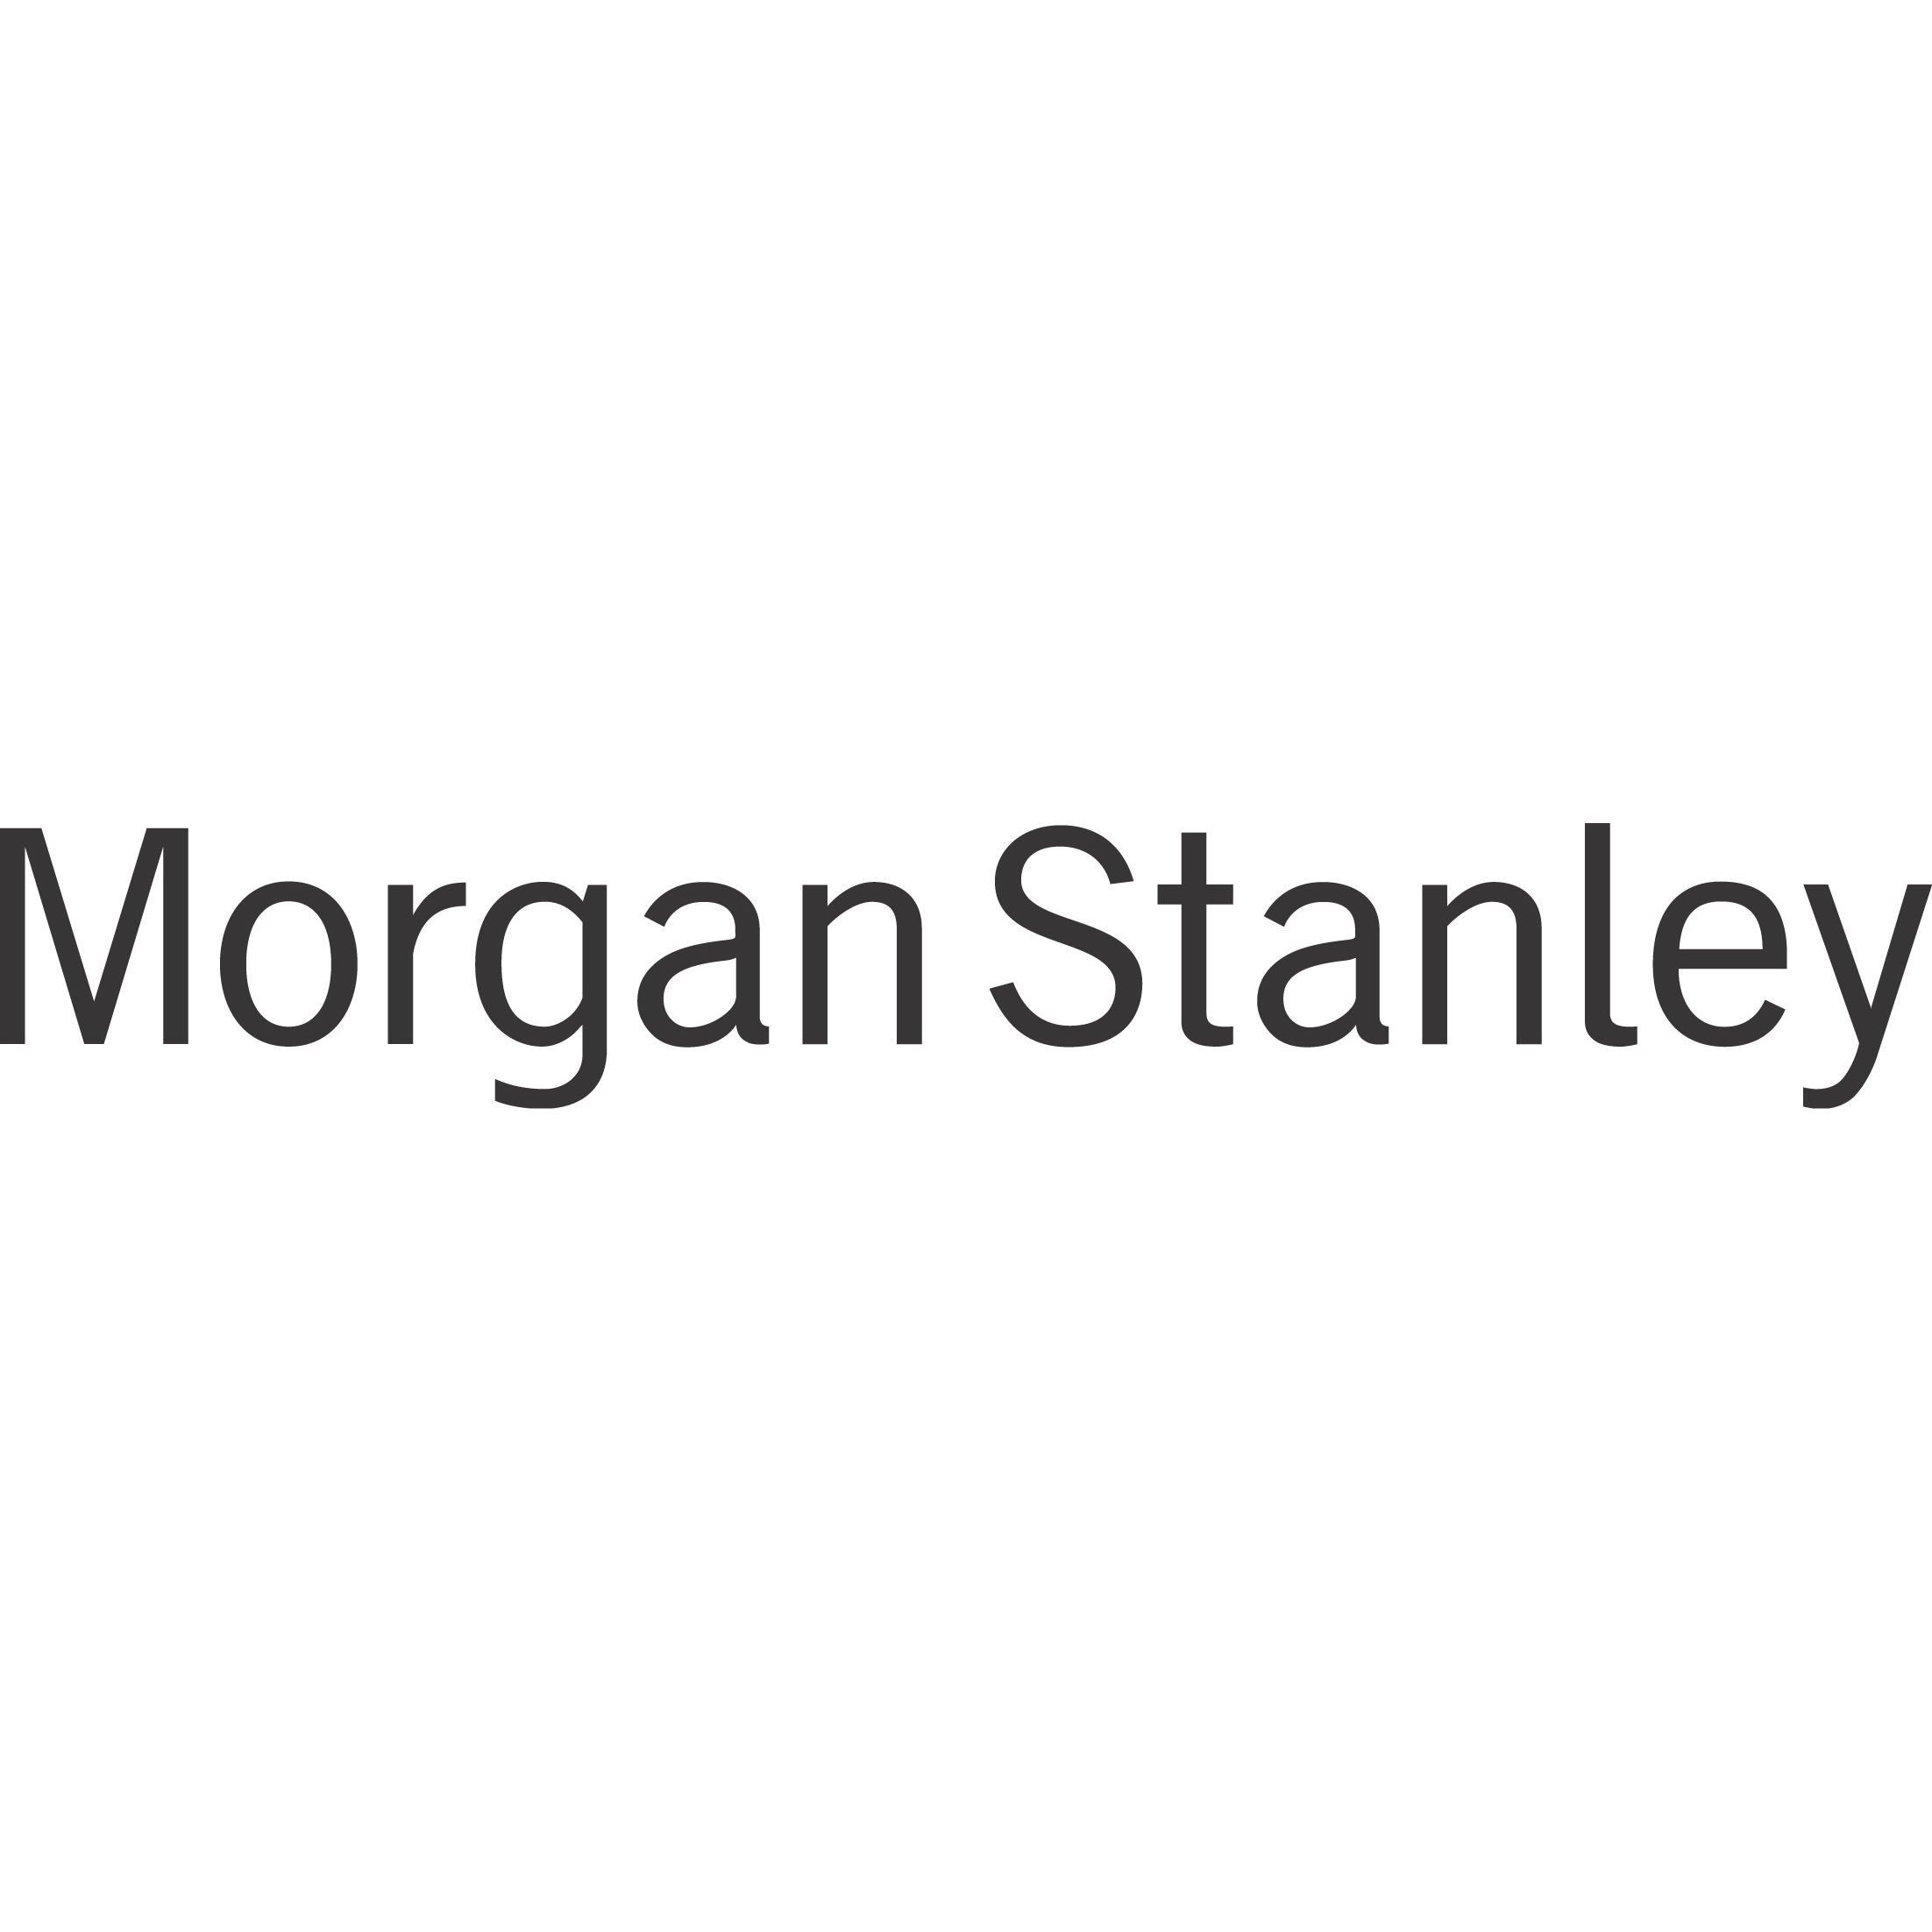 Tracy L Brenneman - Morgan Stanley